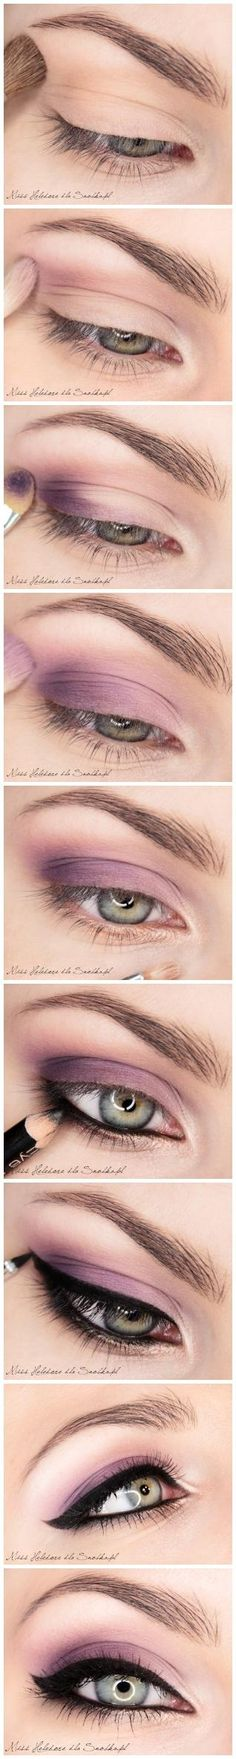 eyeliner + purple eye shadow--this is beautiful!